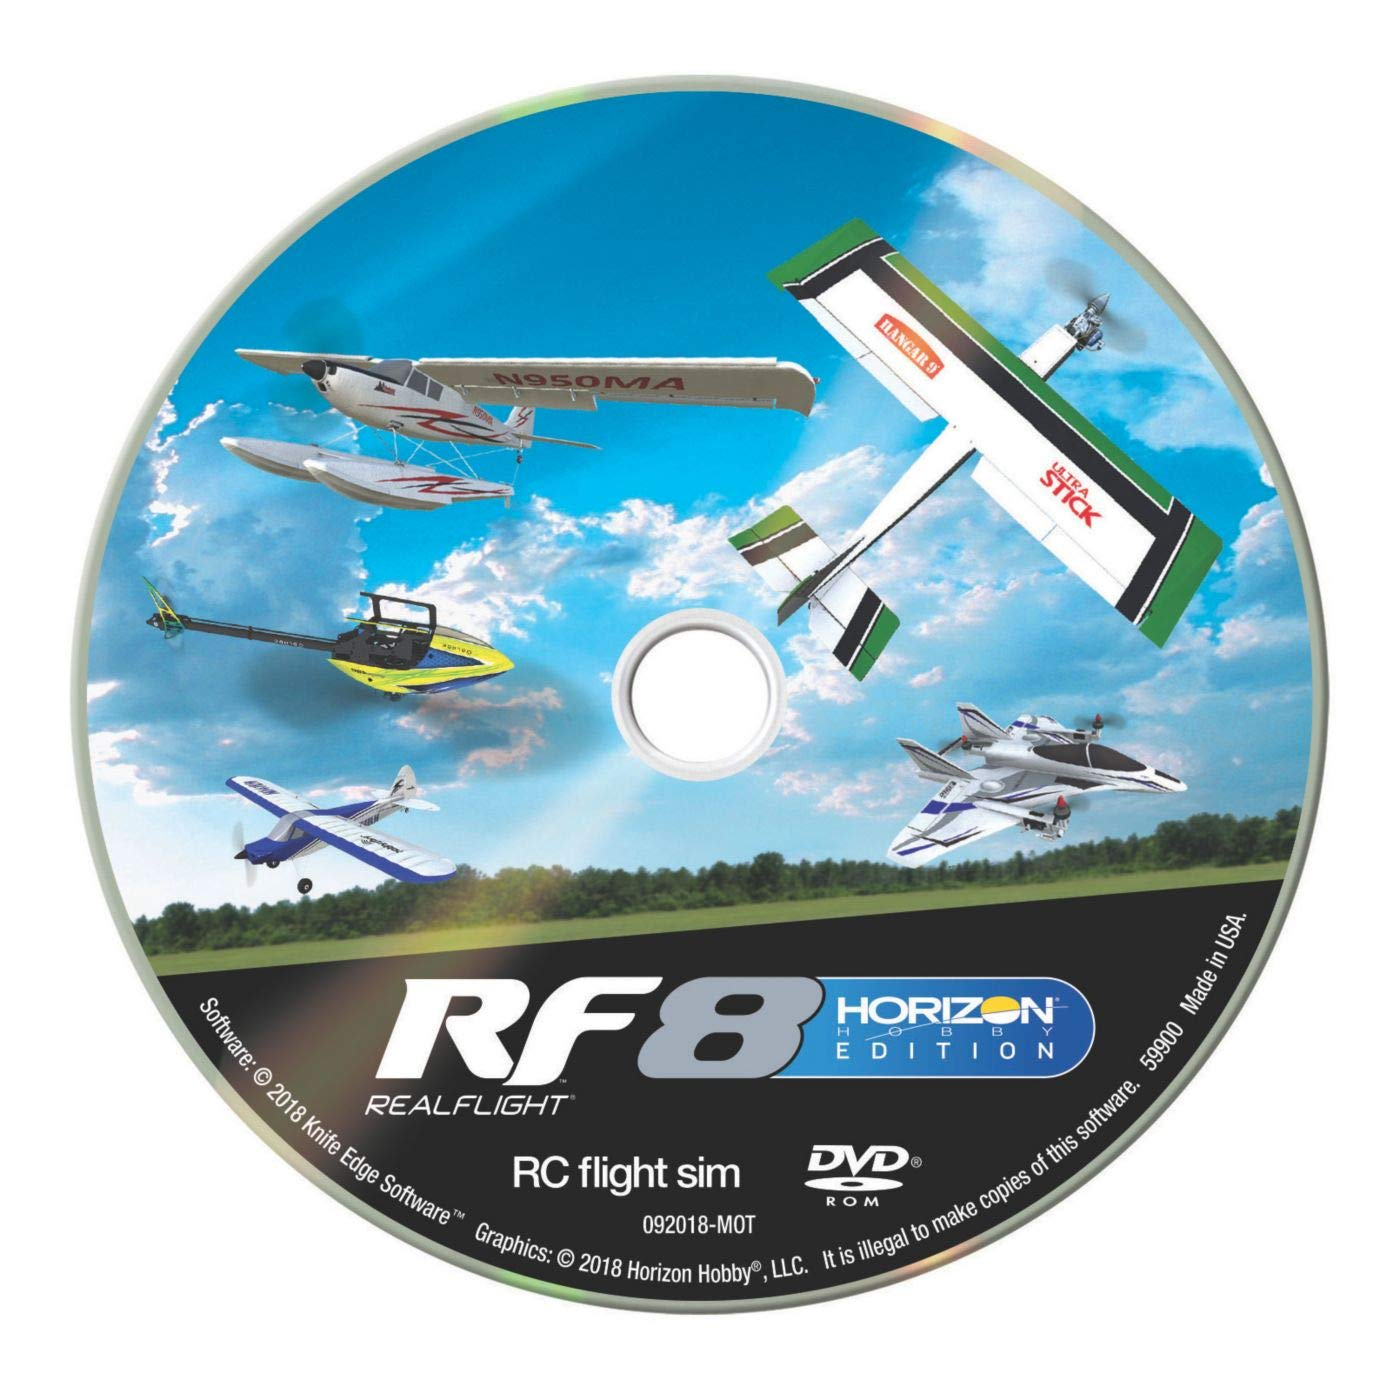 RealFlight RF8 Horizon Hobby Edition with Interlink-X Controller, RFL1000 by RealFlight (Image #3)